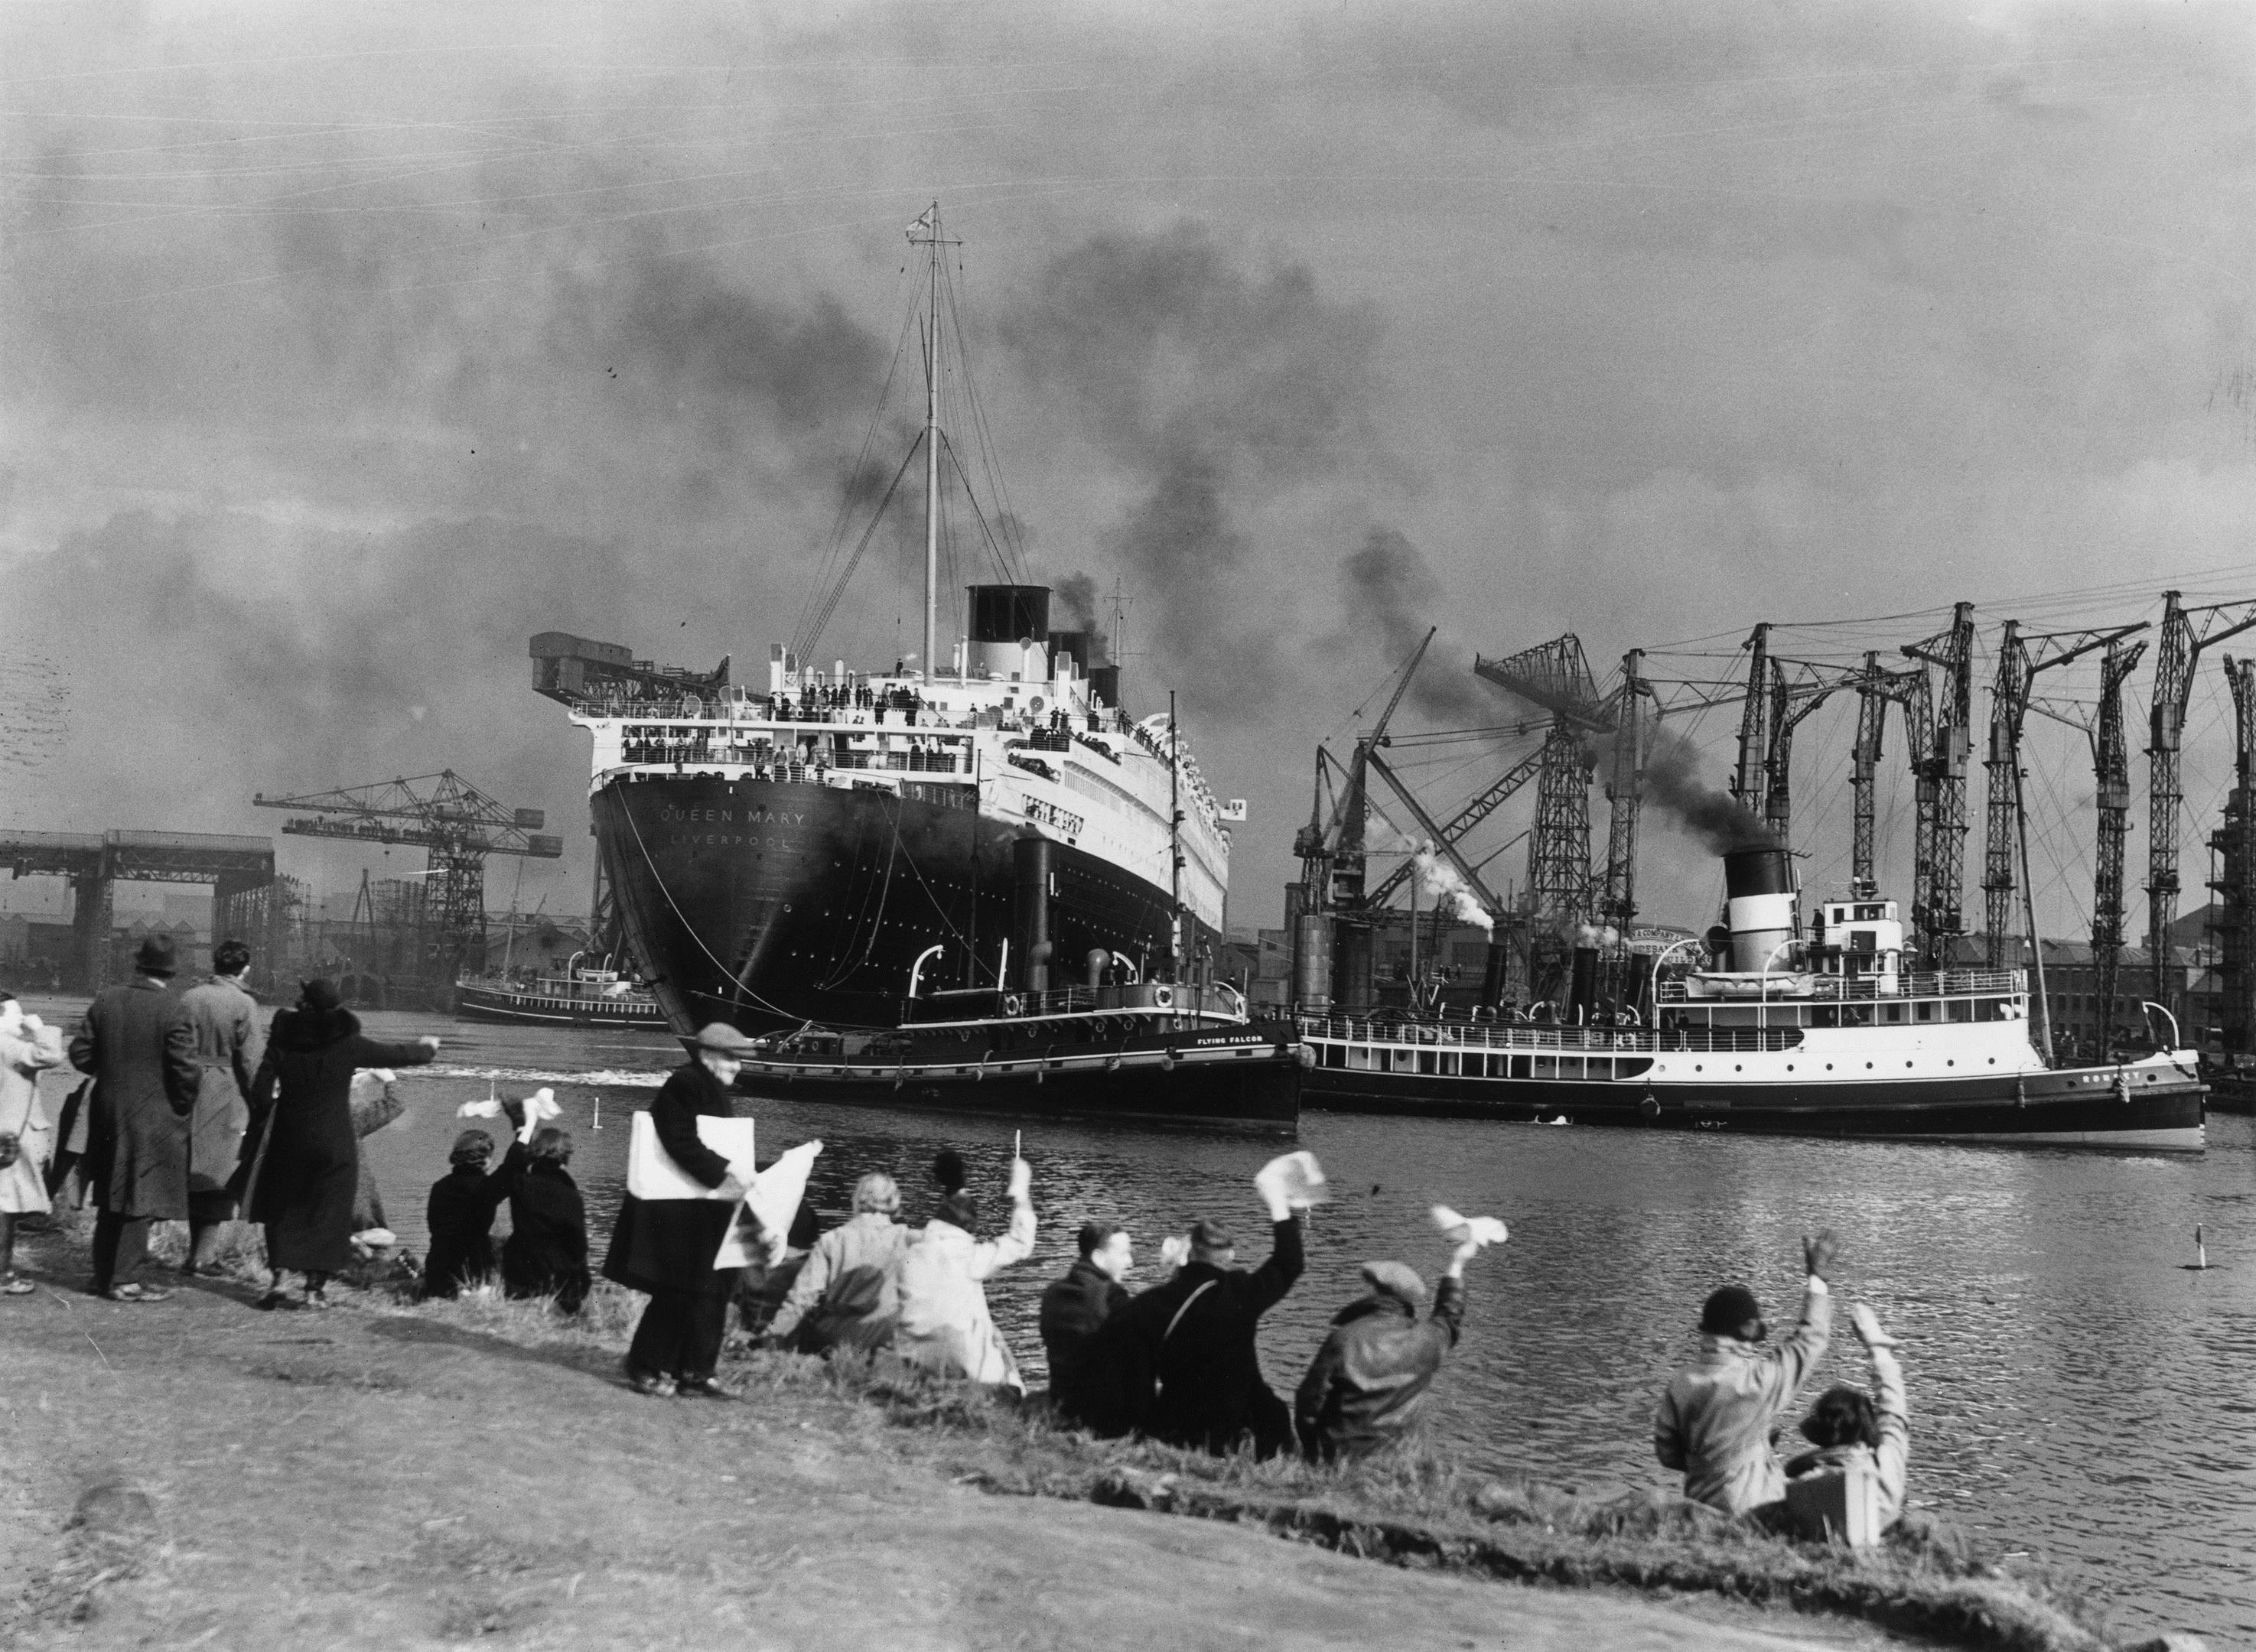 Crowds gather to watch the new Cunard White Star liner Queen Mary leaving her fitting-out berth a couple of years after the launch (Topical Press Agency/Getty Images)